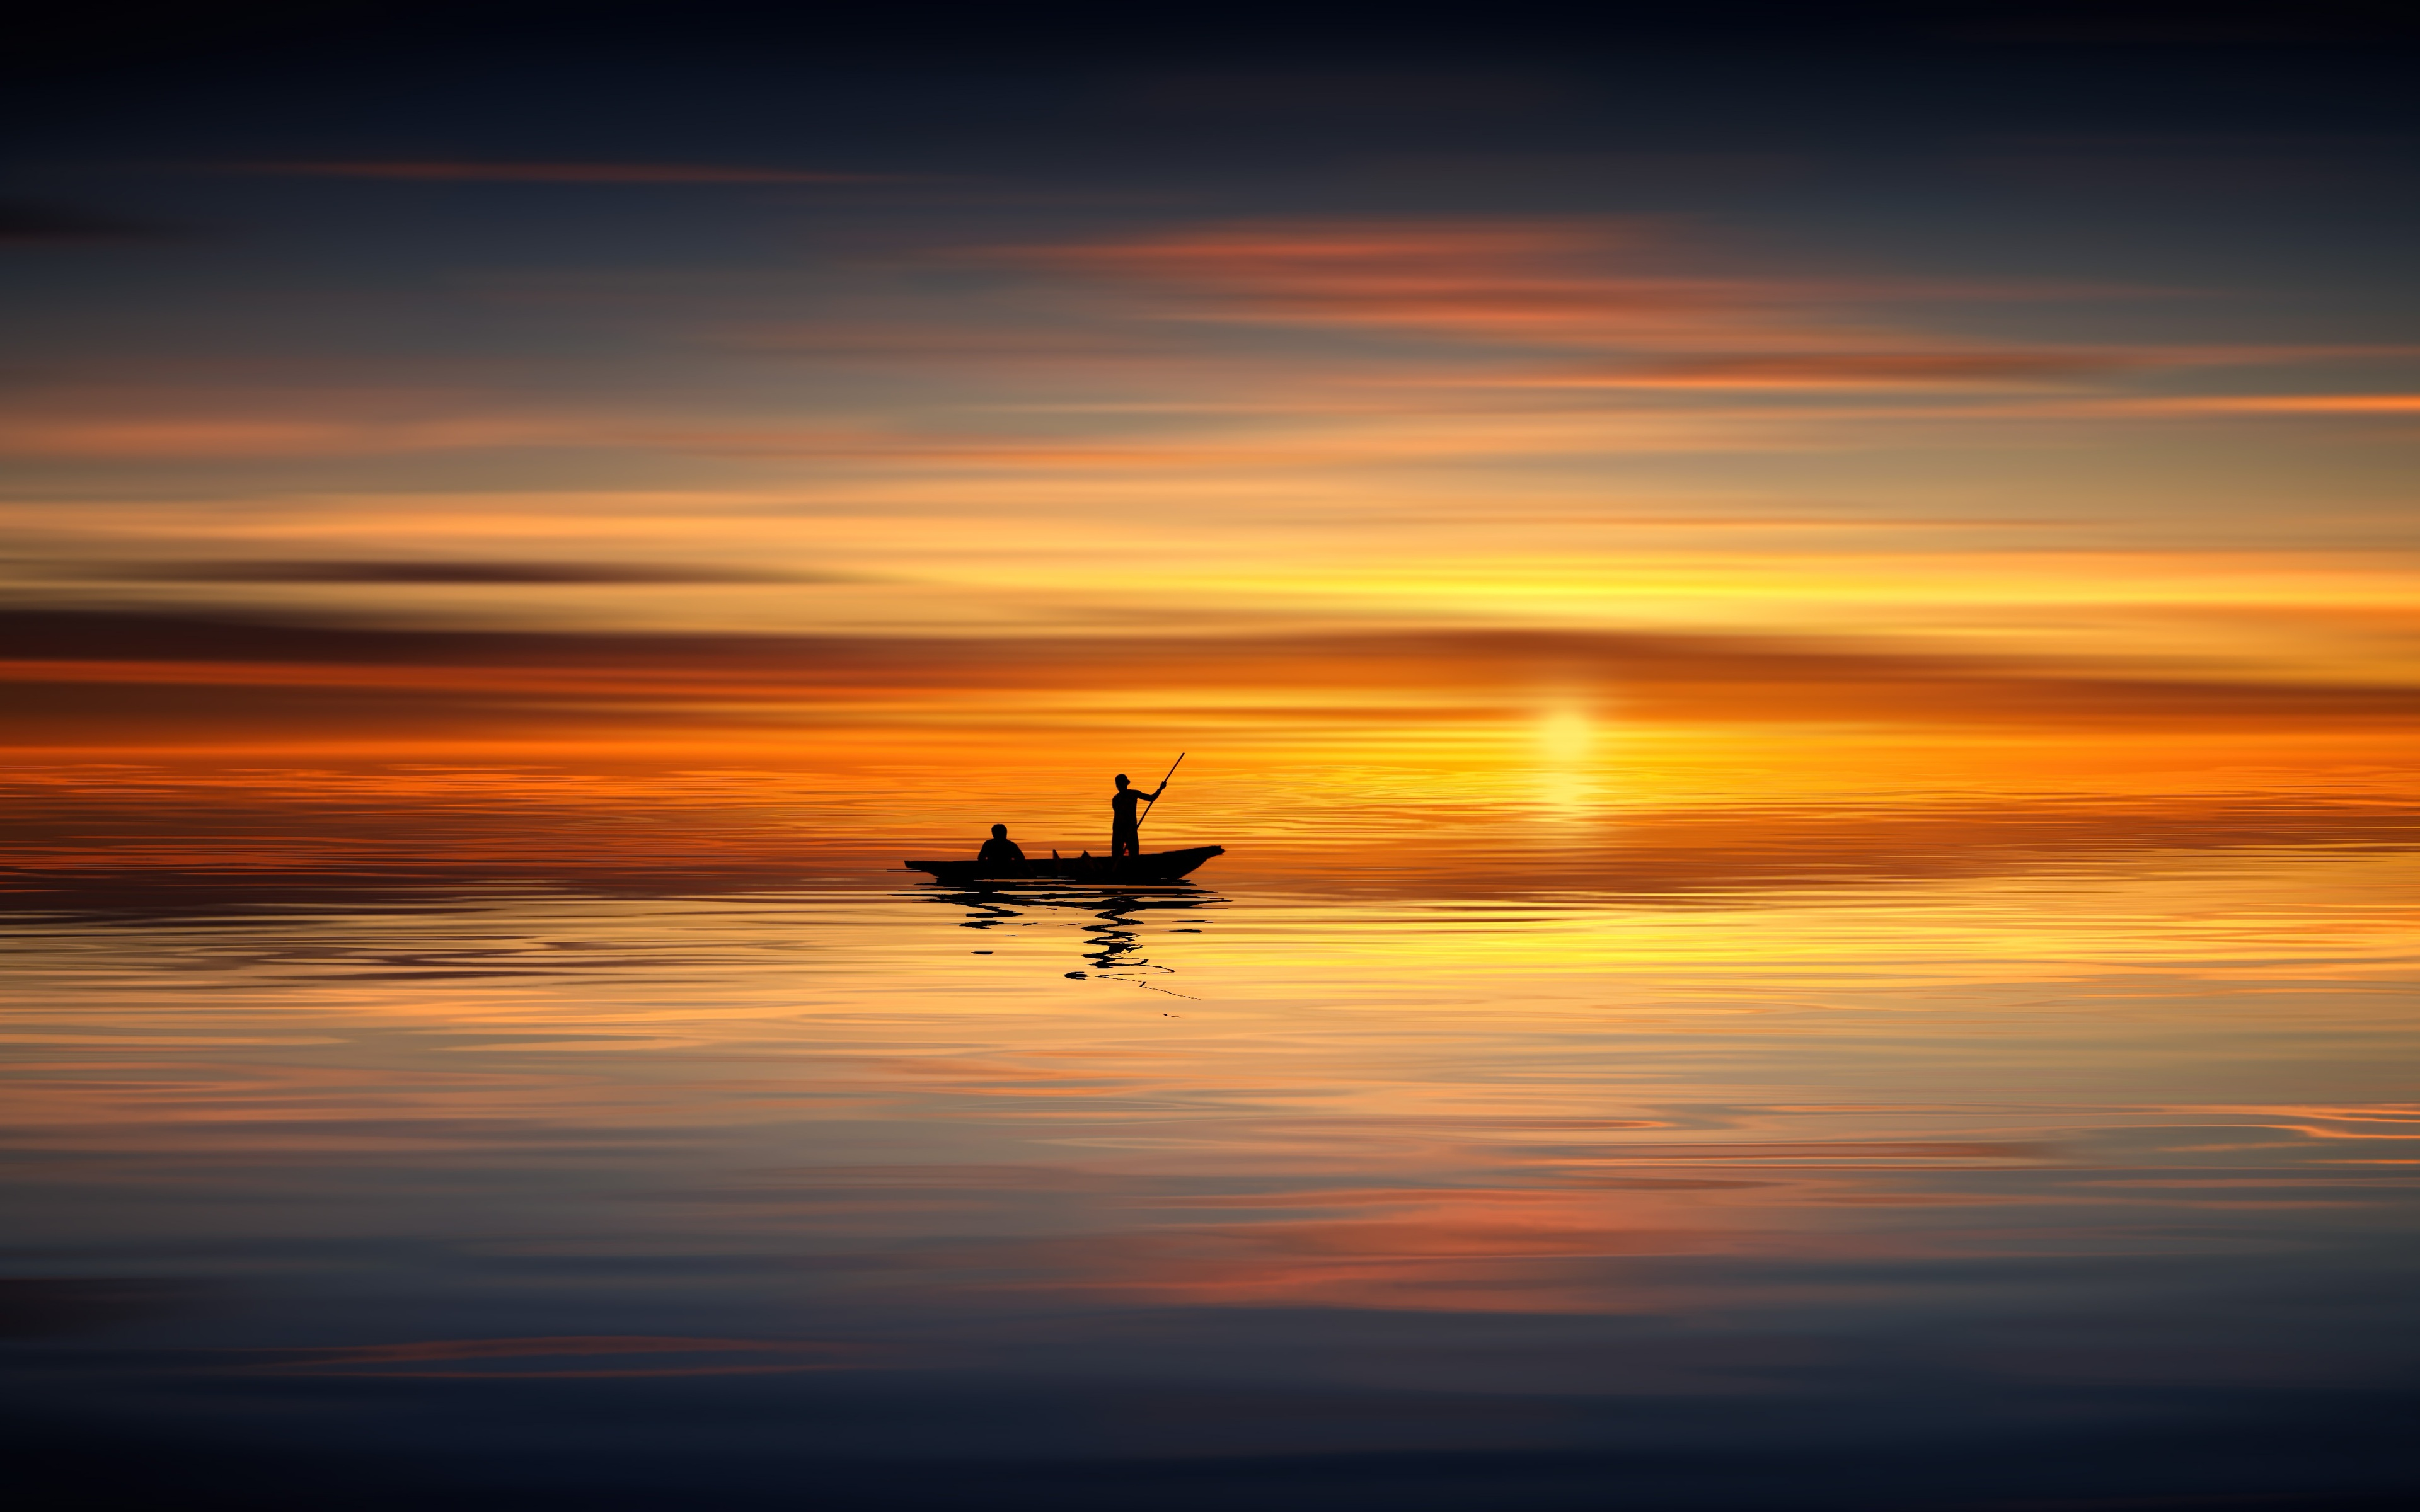 3840x2400 Boat Ocean Sunset Landscape 5k 4k HD 4k Wallpapers, Images,  Backgrounds, Photos and Pictures